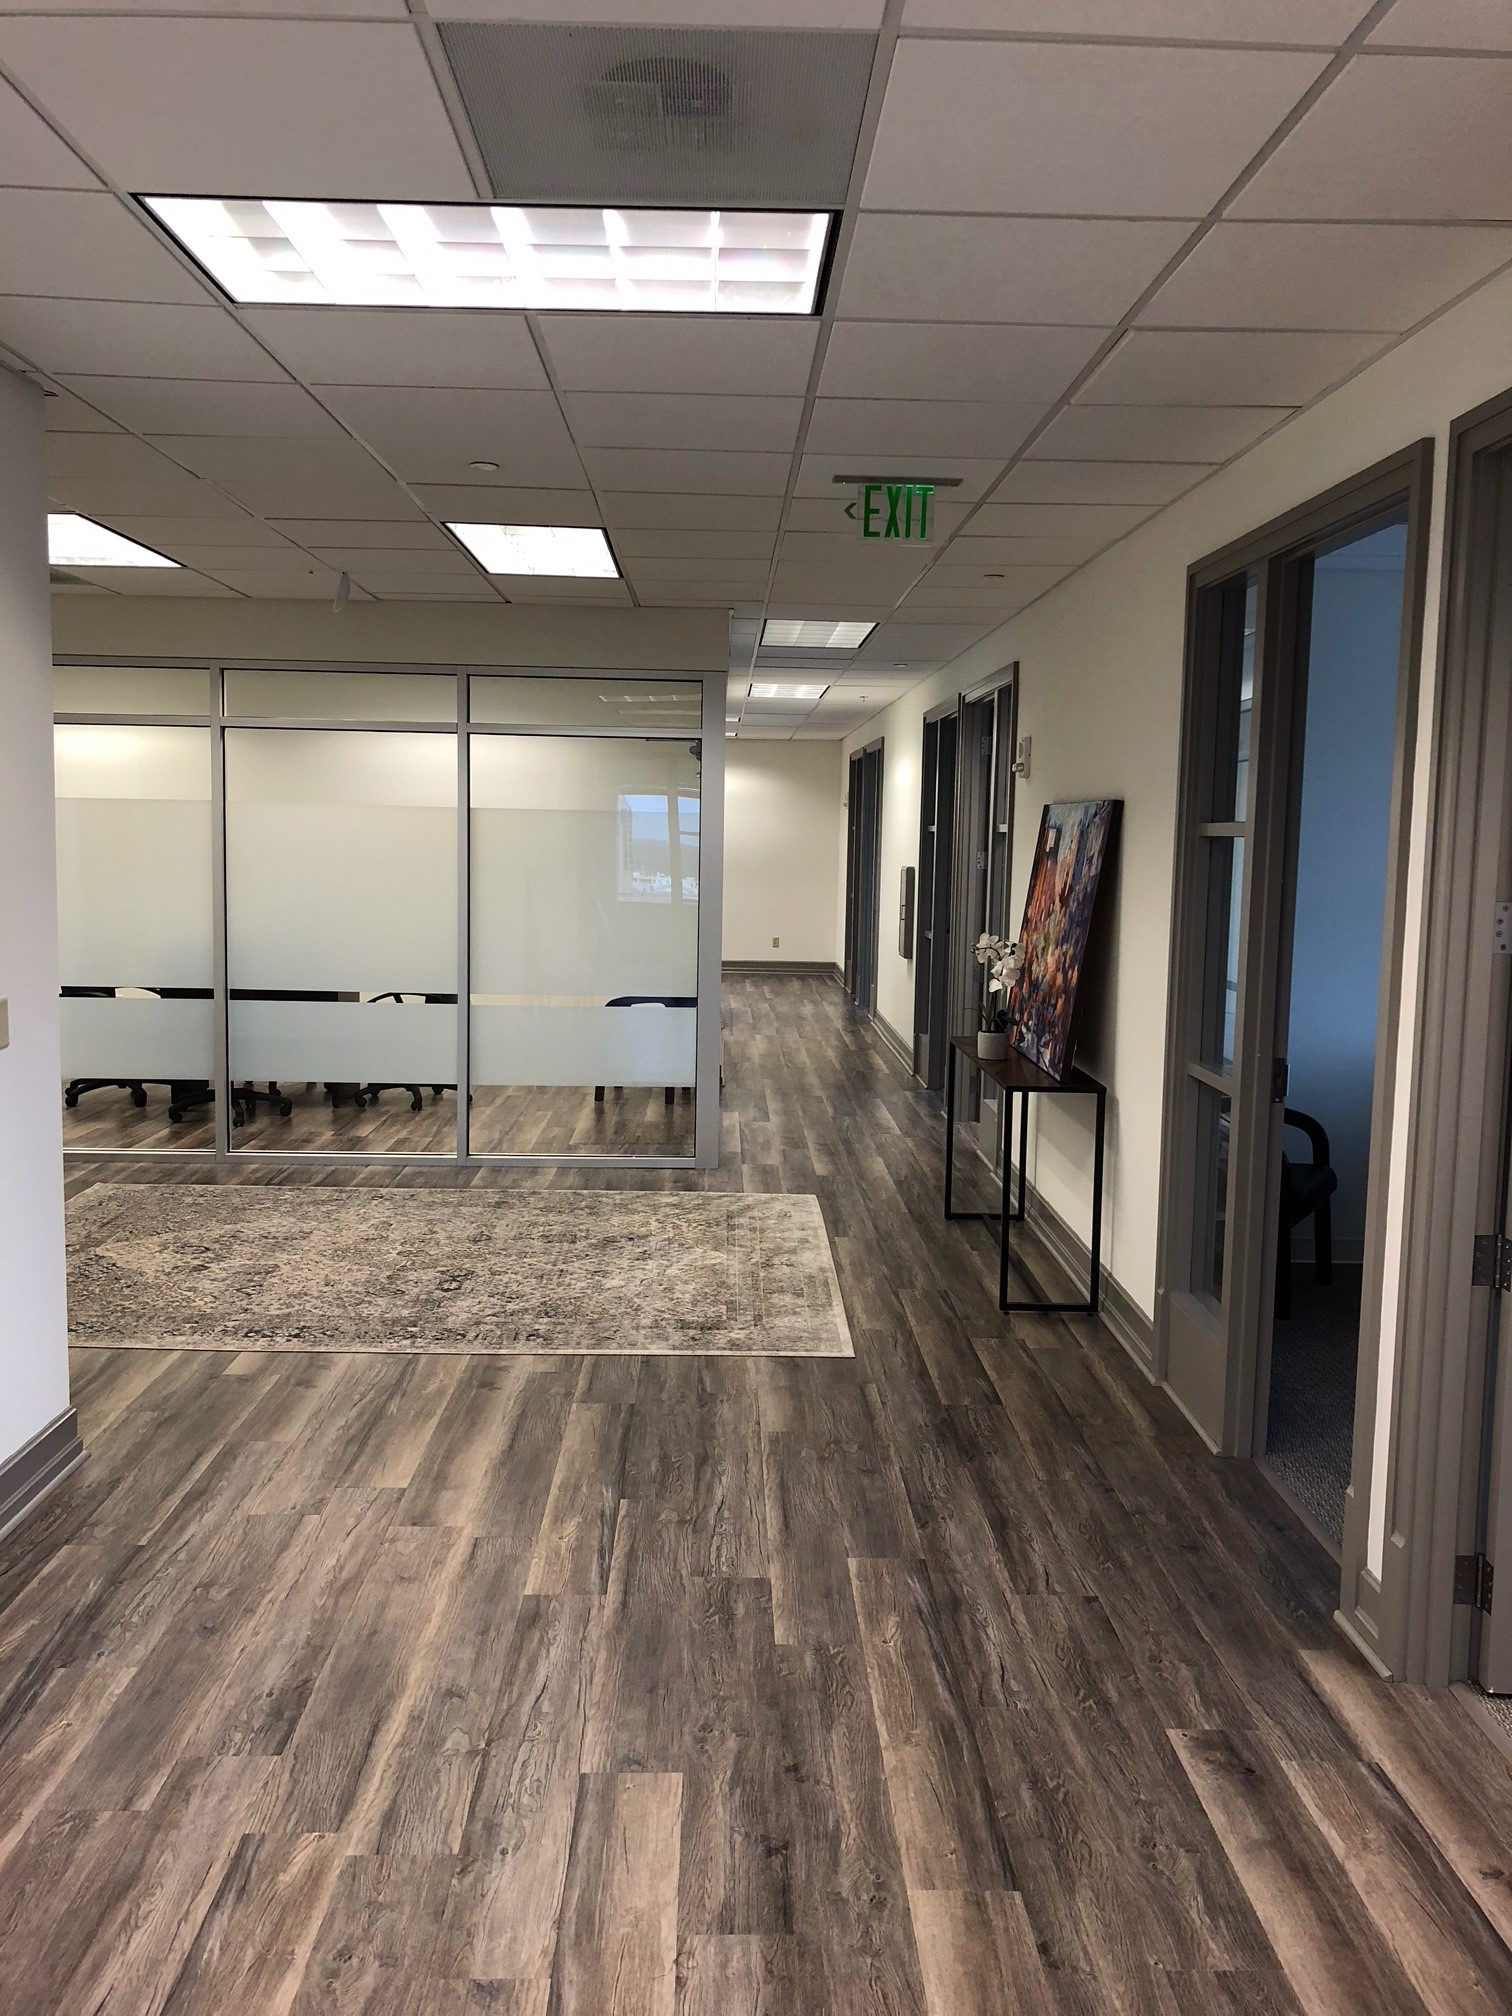 Downtown Columbia - 3,000 Square Foot Office Upfit in Columbia's Business District